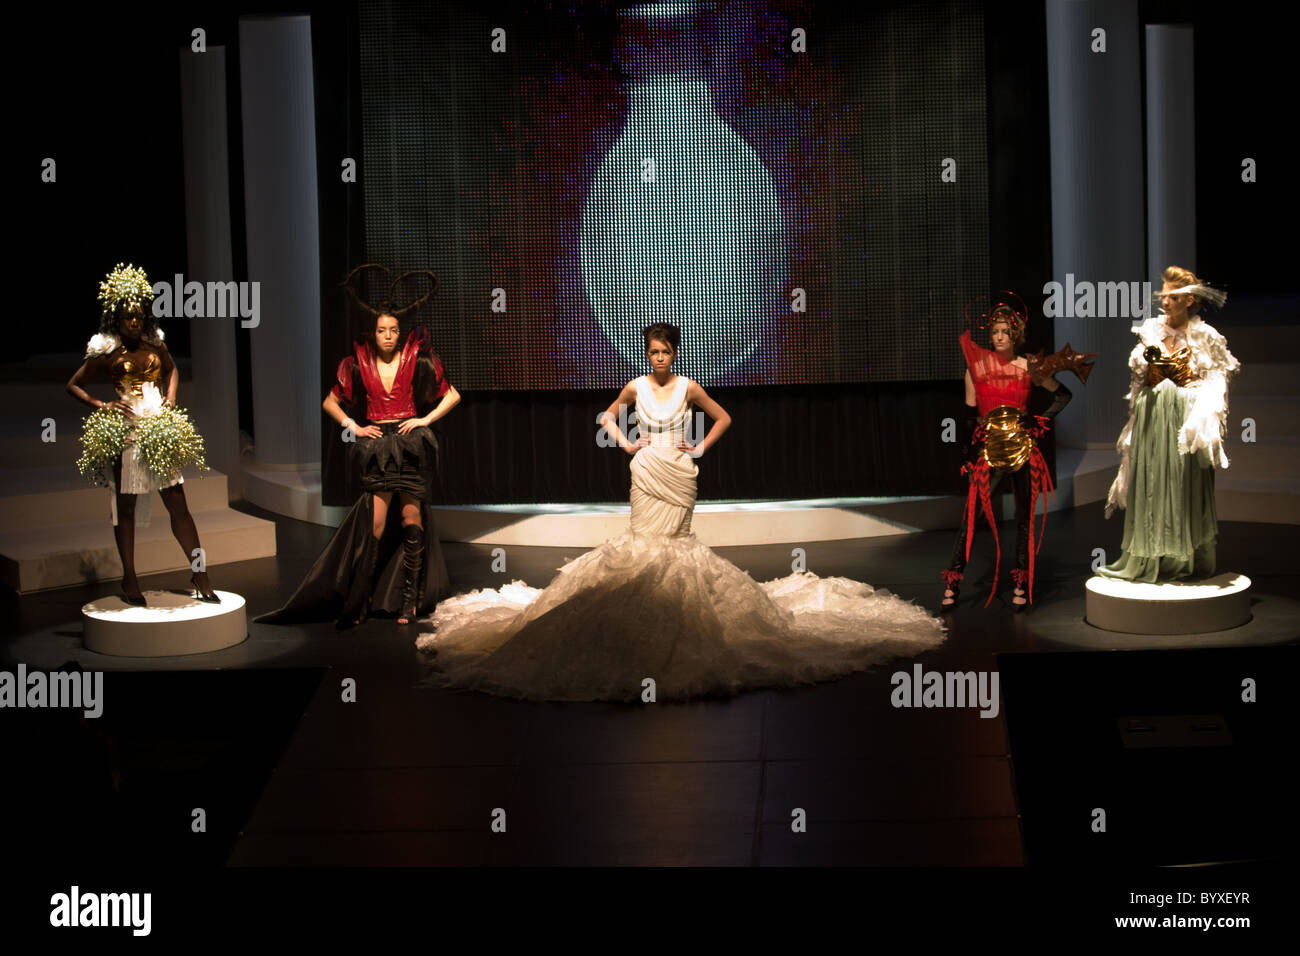 school fashion show group female models posing - Stock Image